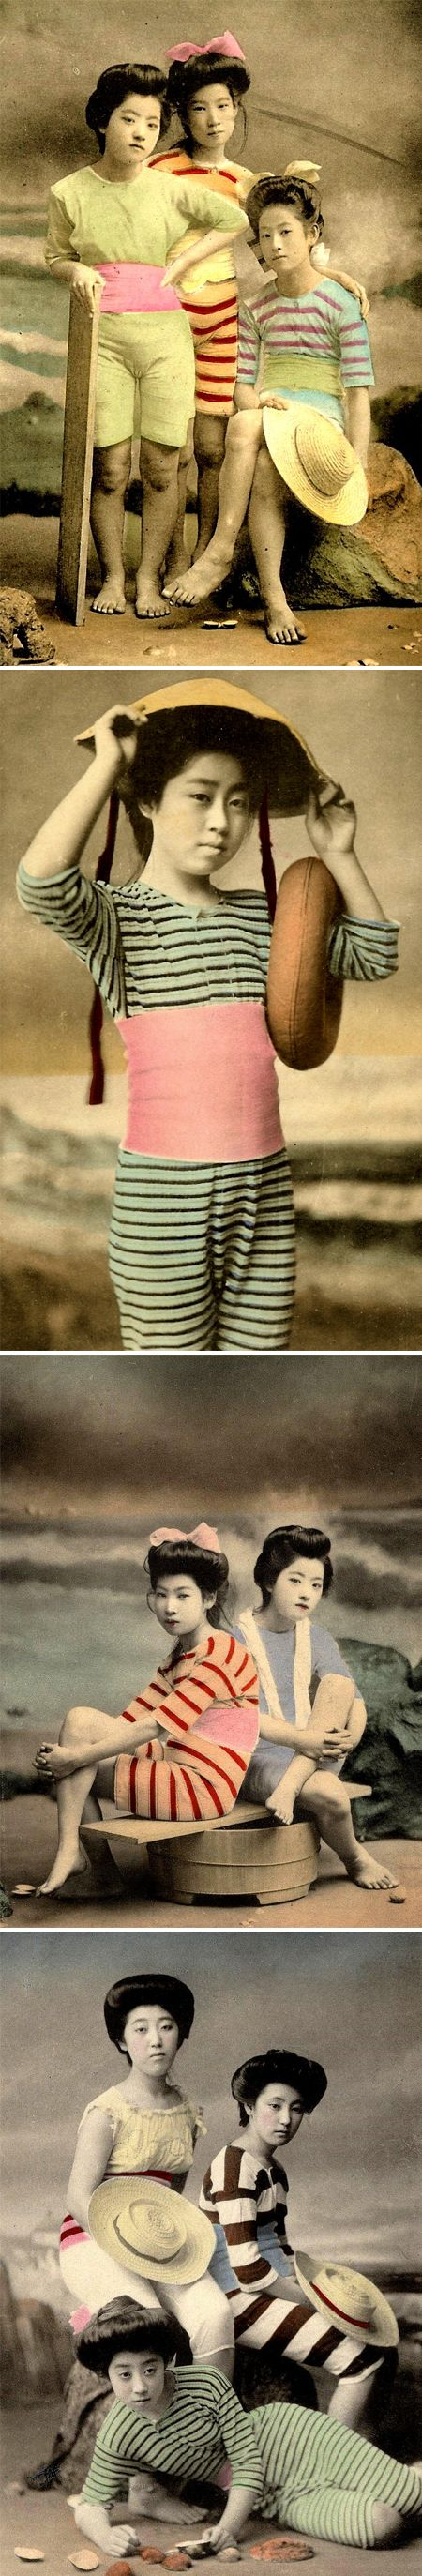 Geishas in Swimsuits (using photographs from the early 1900's)